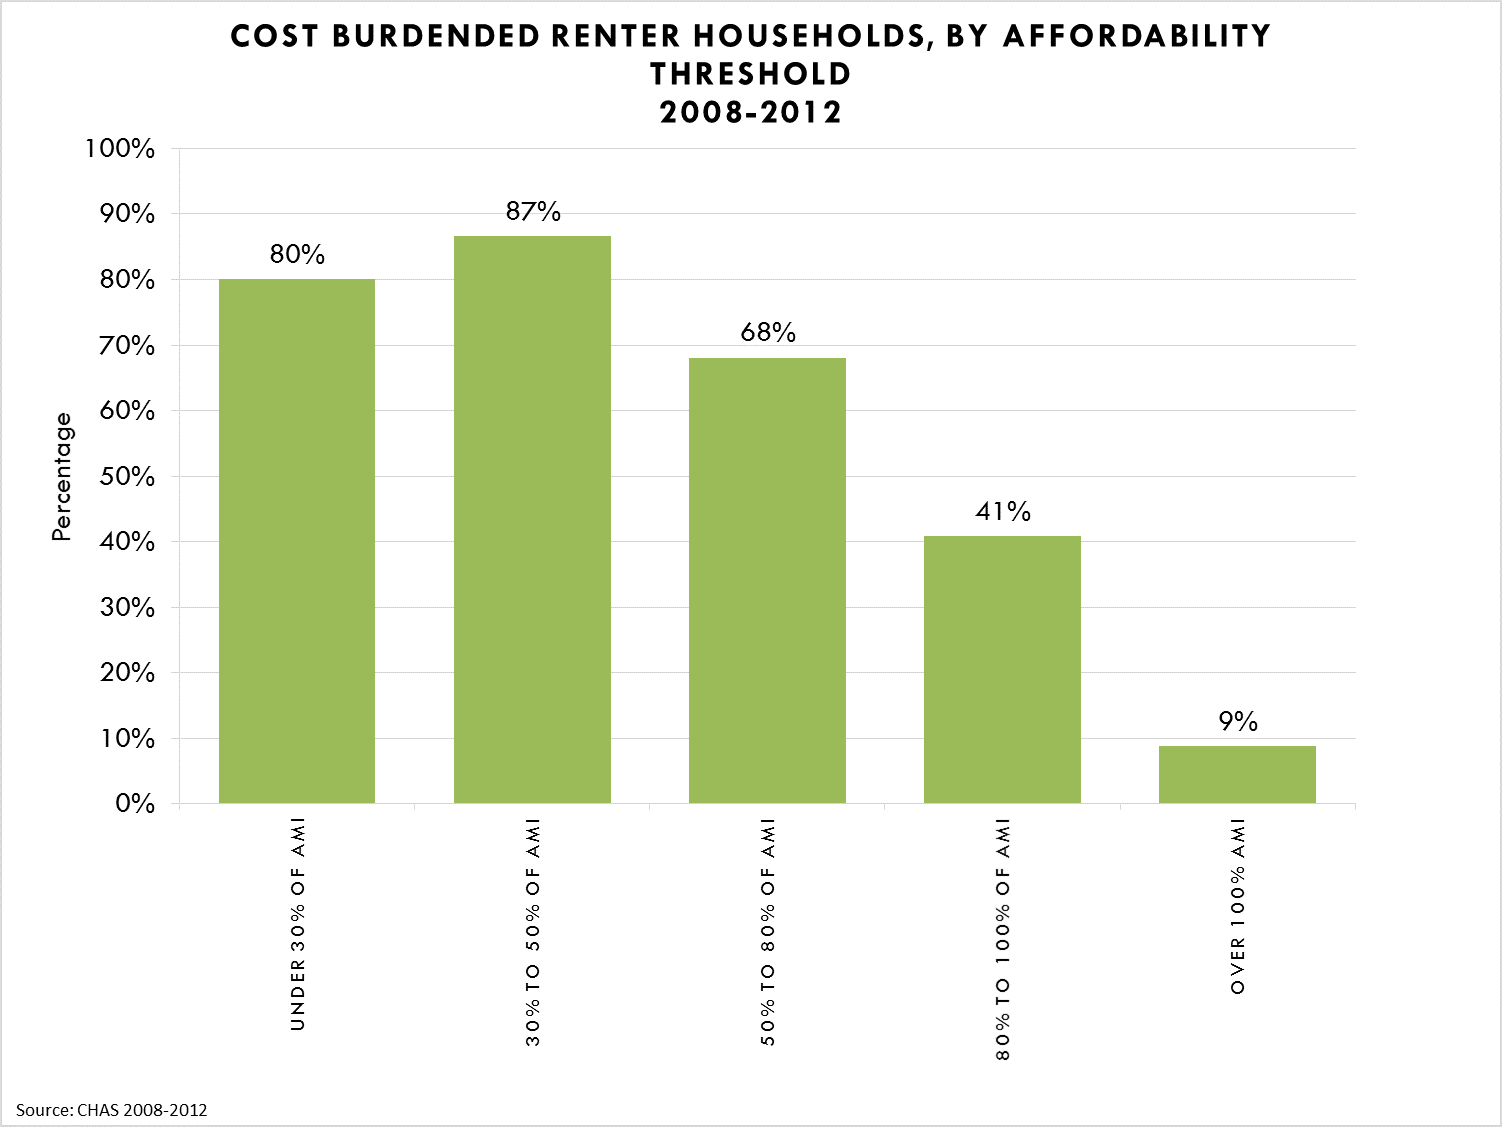 Cost Burdened Renter Households, By Affordability Threshold